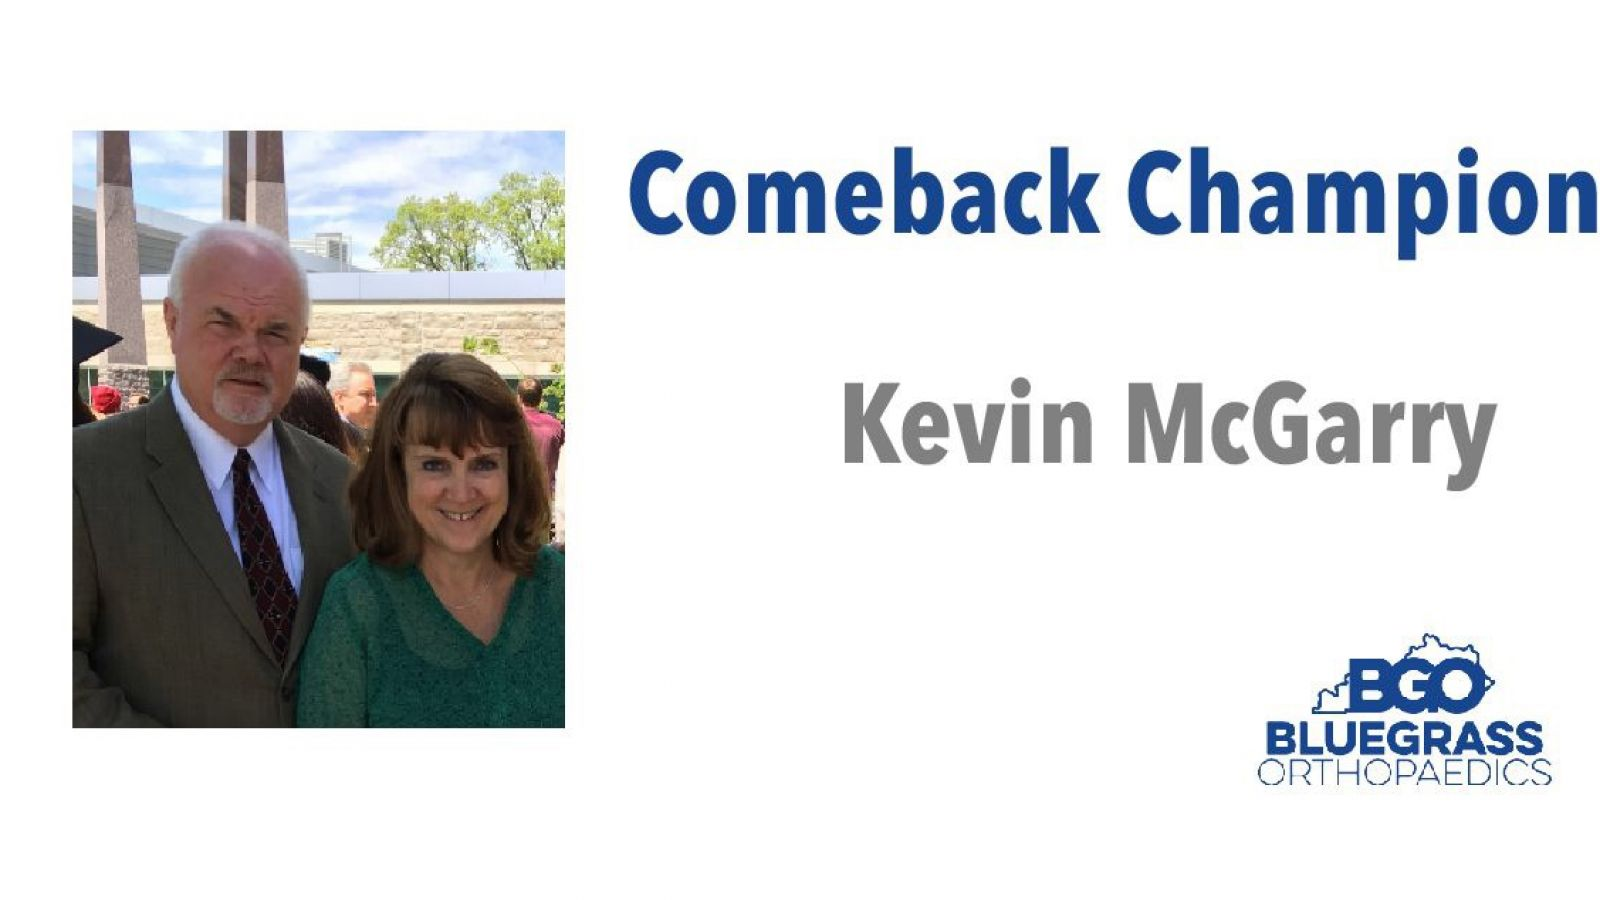 Kevin McGarry:  Comeback Champion